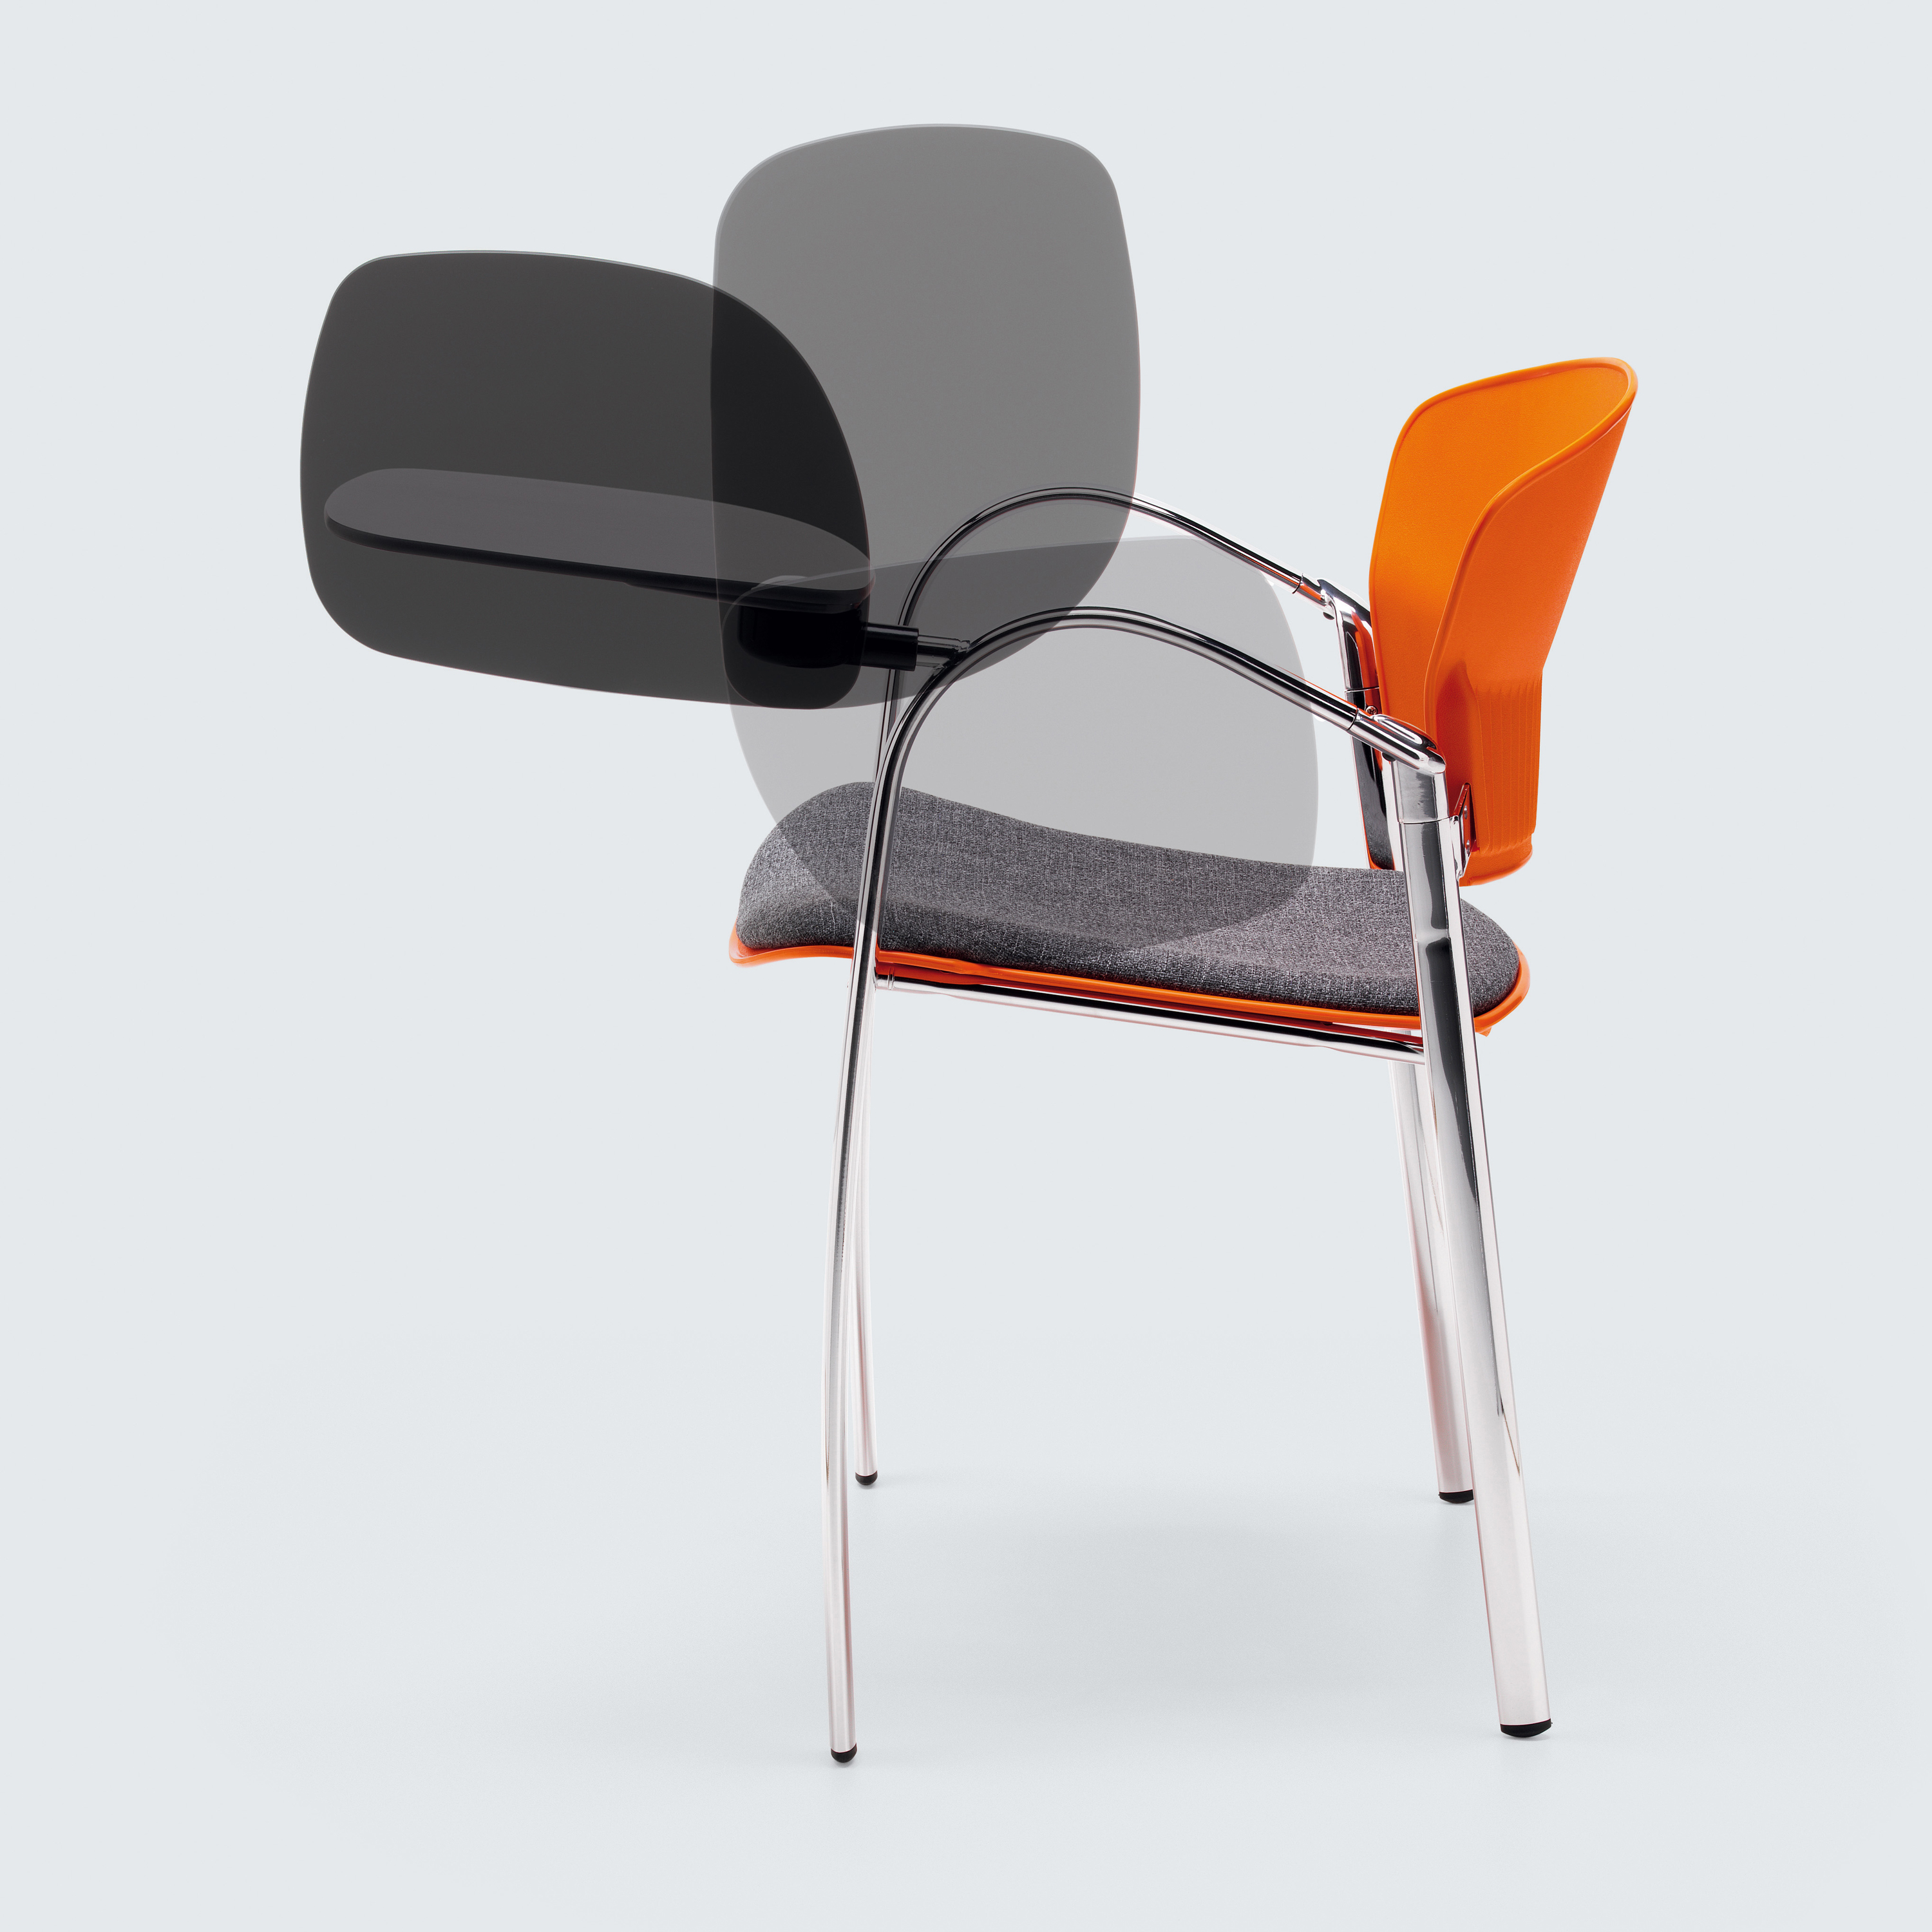 12S_Estel_Comfort&Relax_Office-chair&contract-conference_Cameo